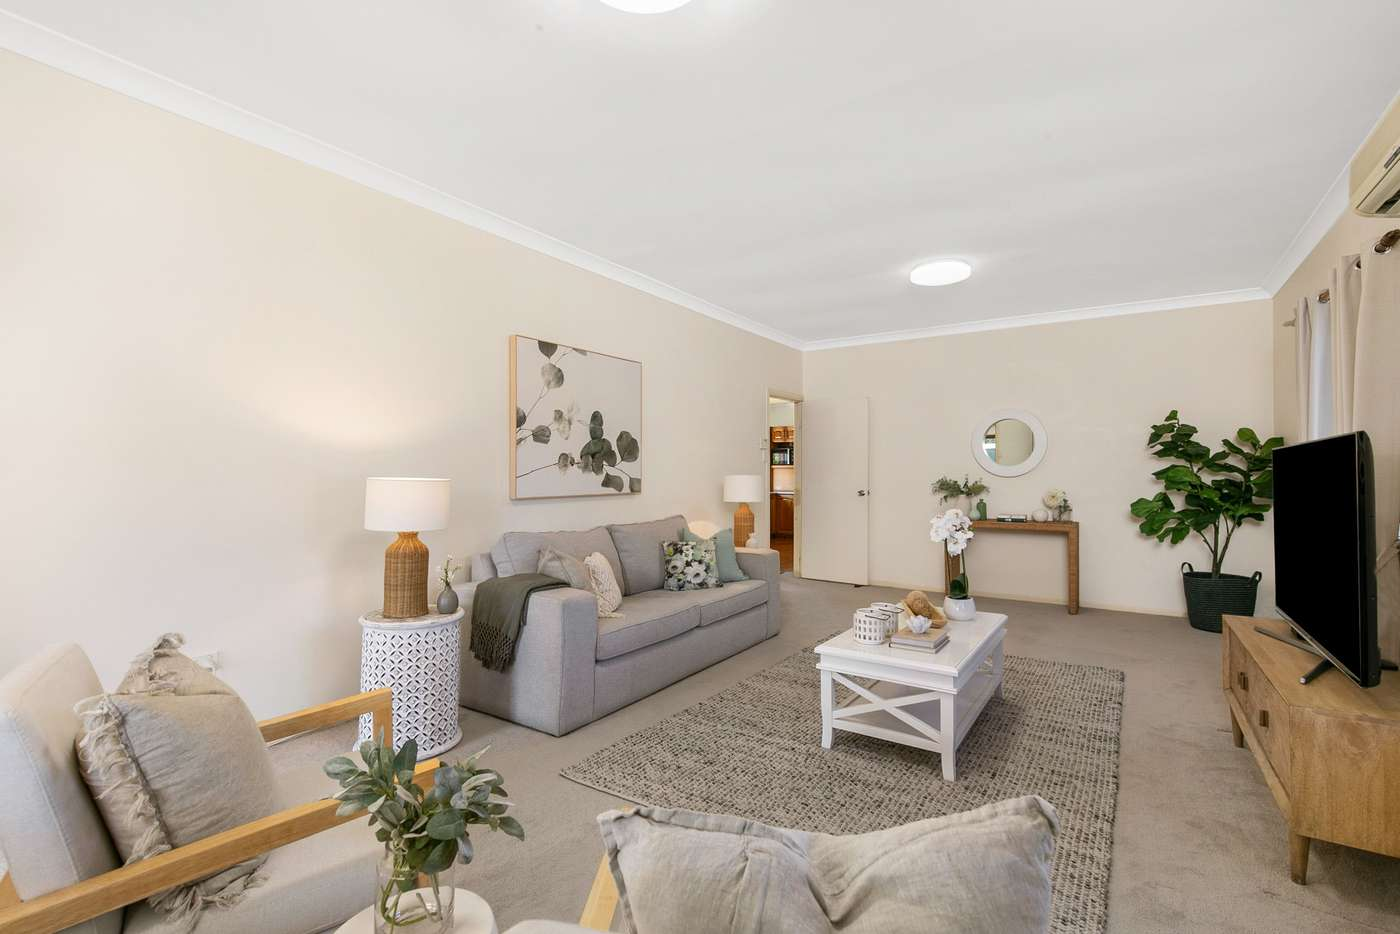 Main view of Homely house listing, 172 Oates Avenue, Holland Park QLD 4121